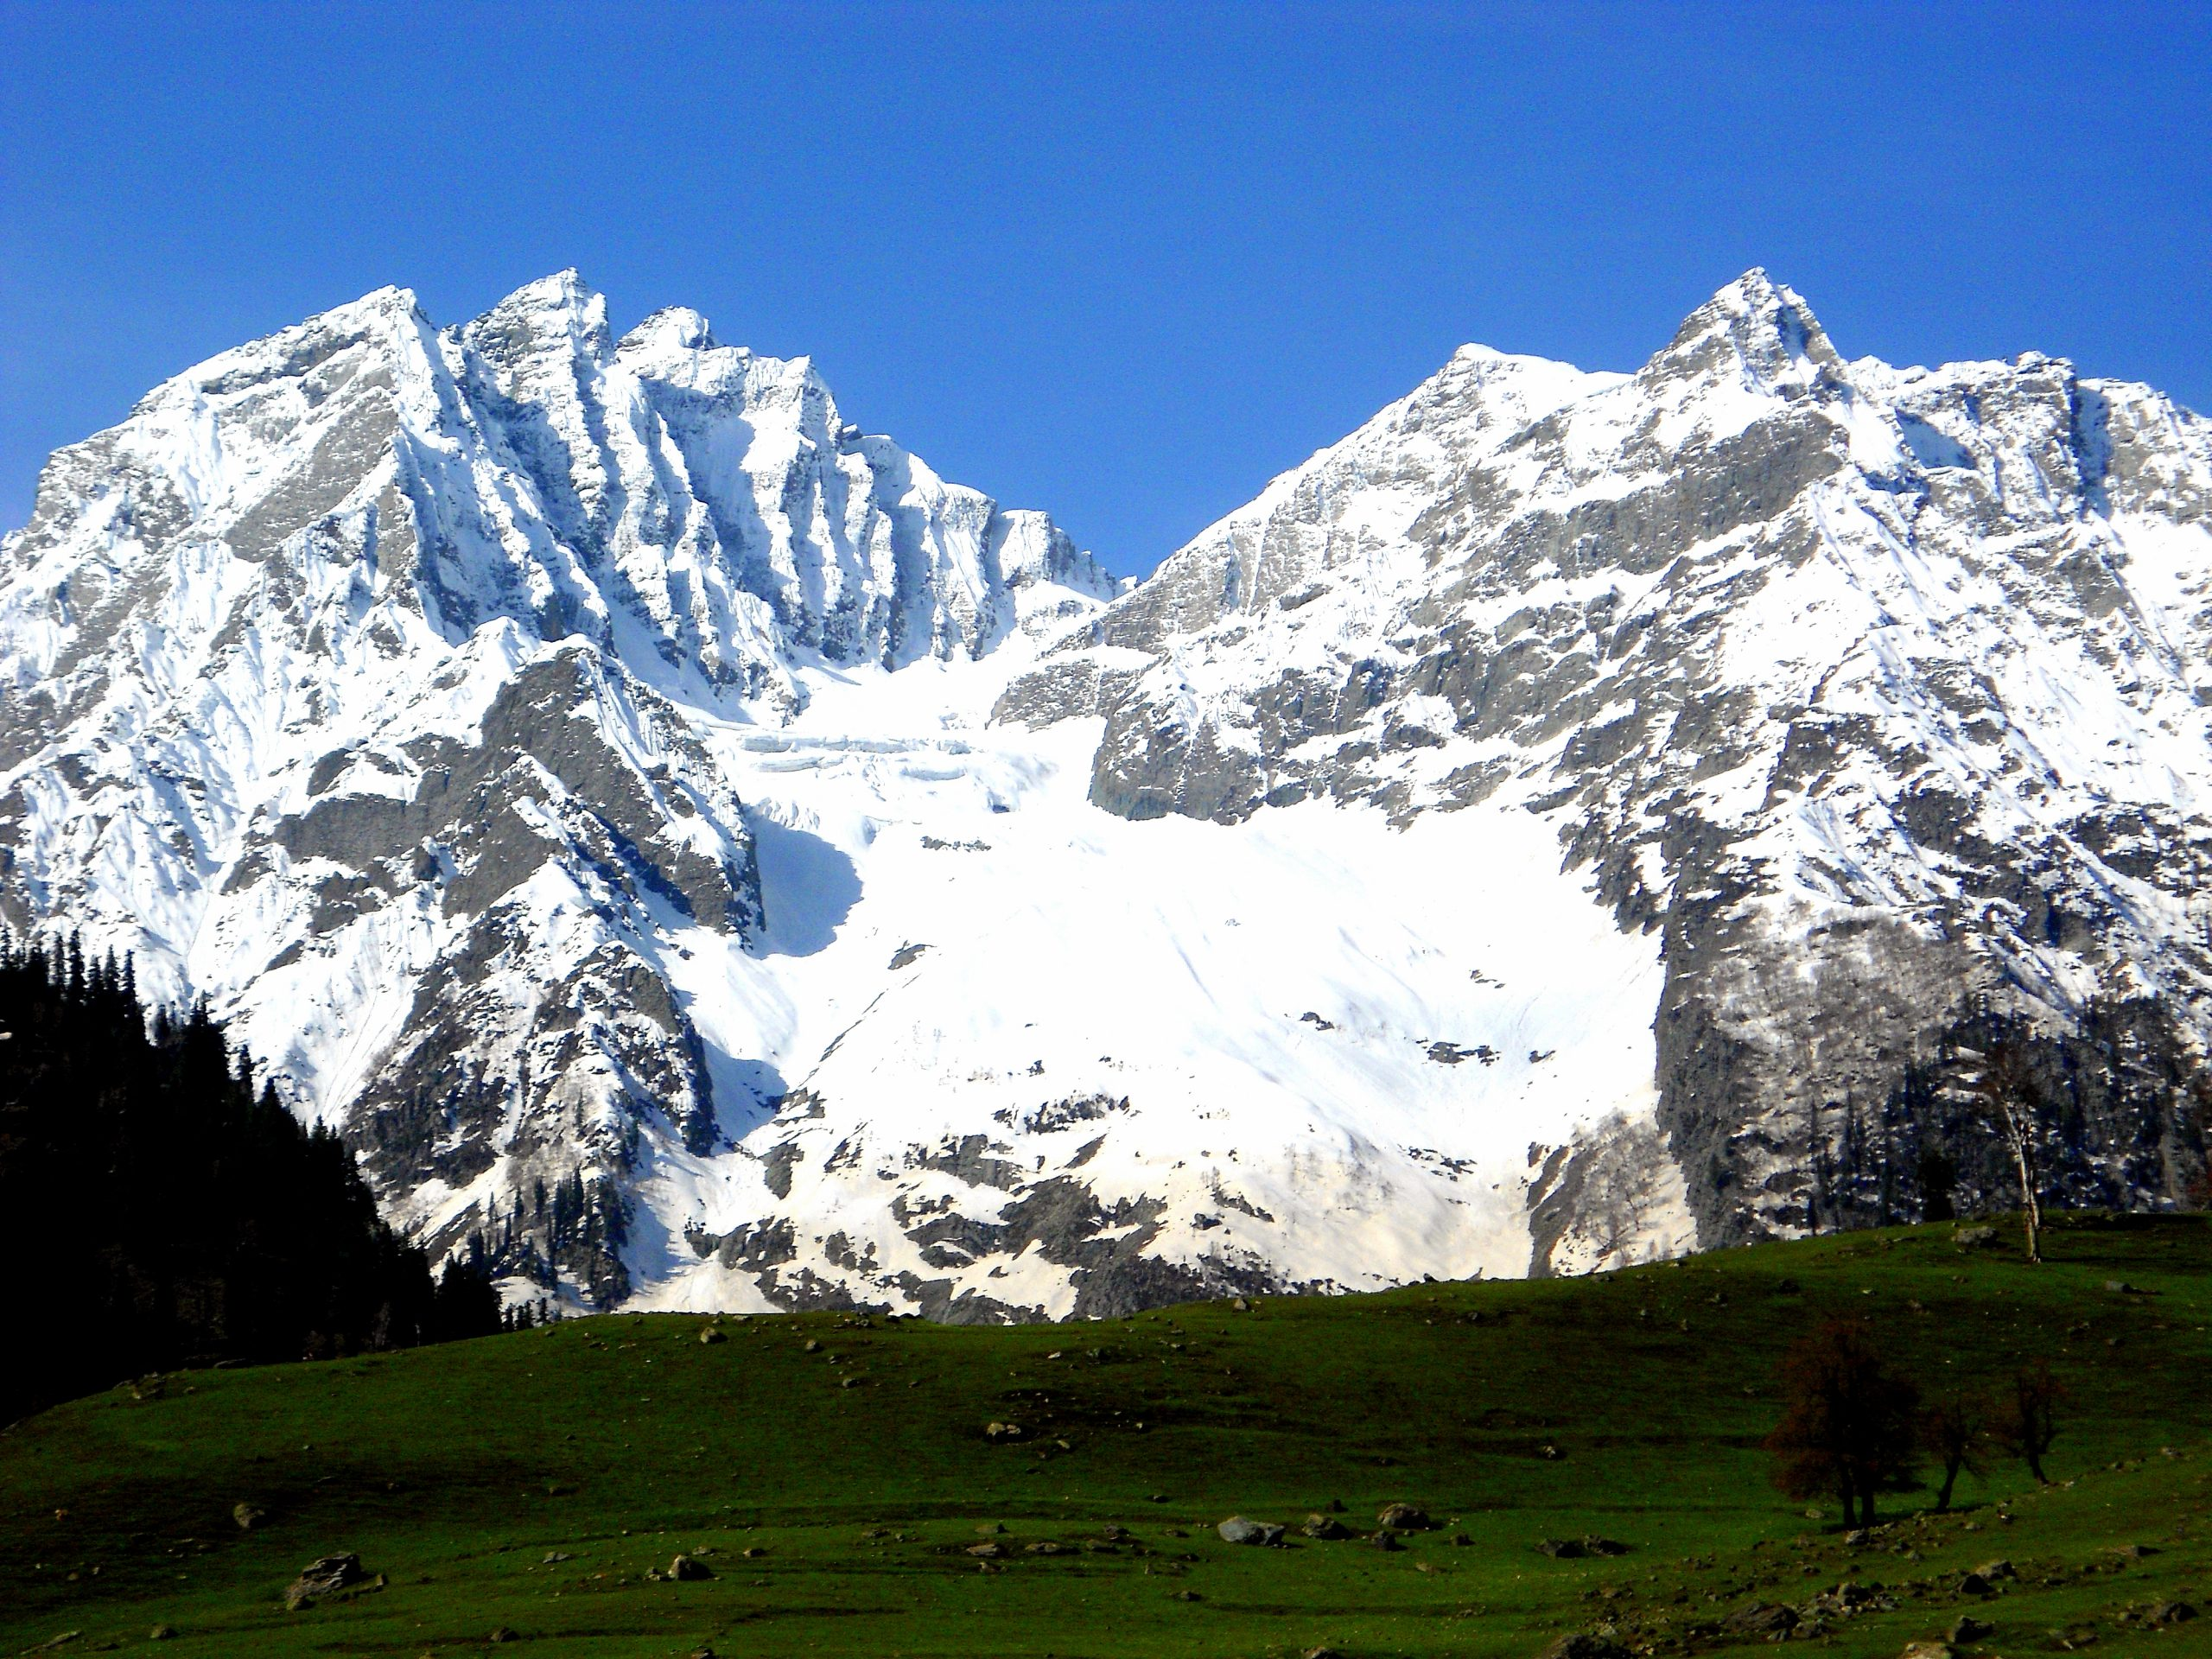 Sonamarg in Indian Union Territory of Jammu and Kashmir